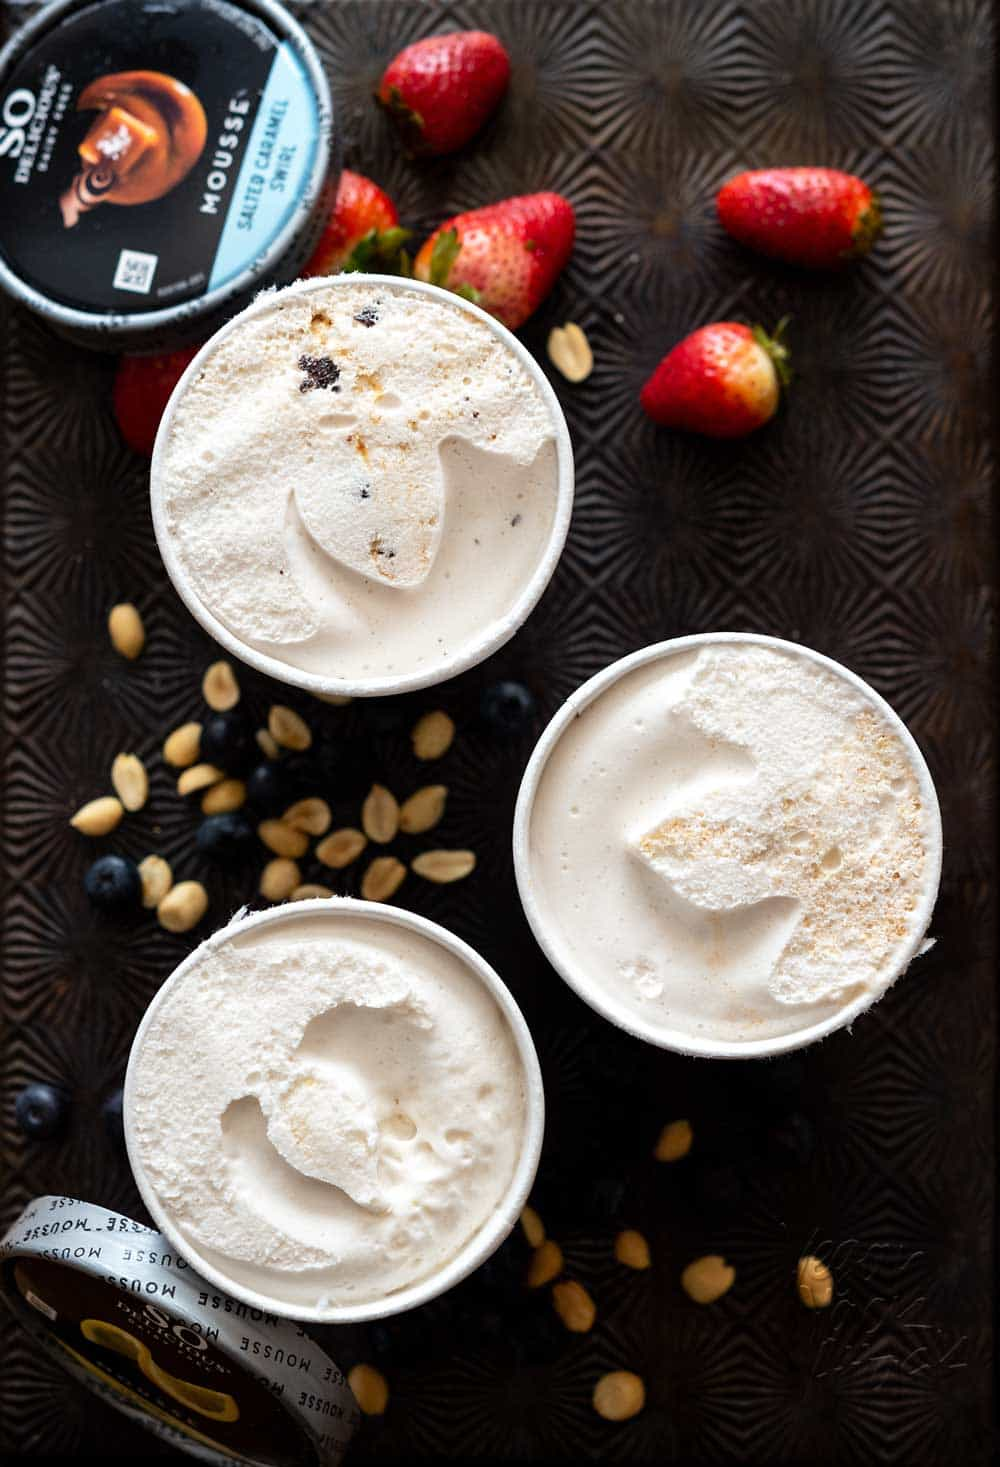 You may have seen the news already, but if you haven't there's a new vegan dessert in town! This So Delicious Frozen Mousse is NO JOKE, and I'm hear to tell you what I think about it. #vegan #sodeliciousdairyfree #shamelesslydecadent